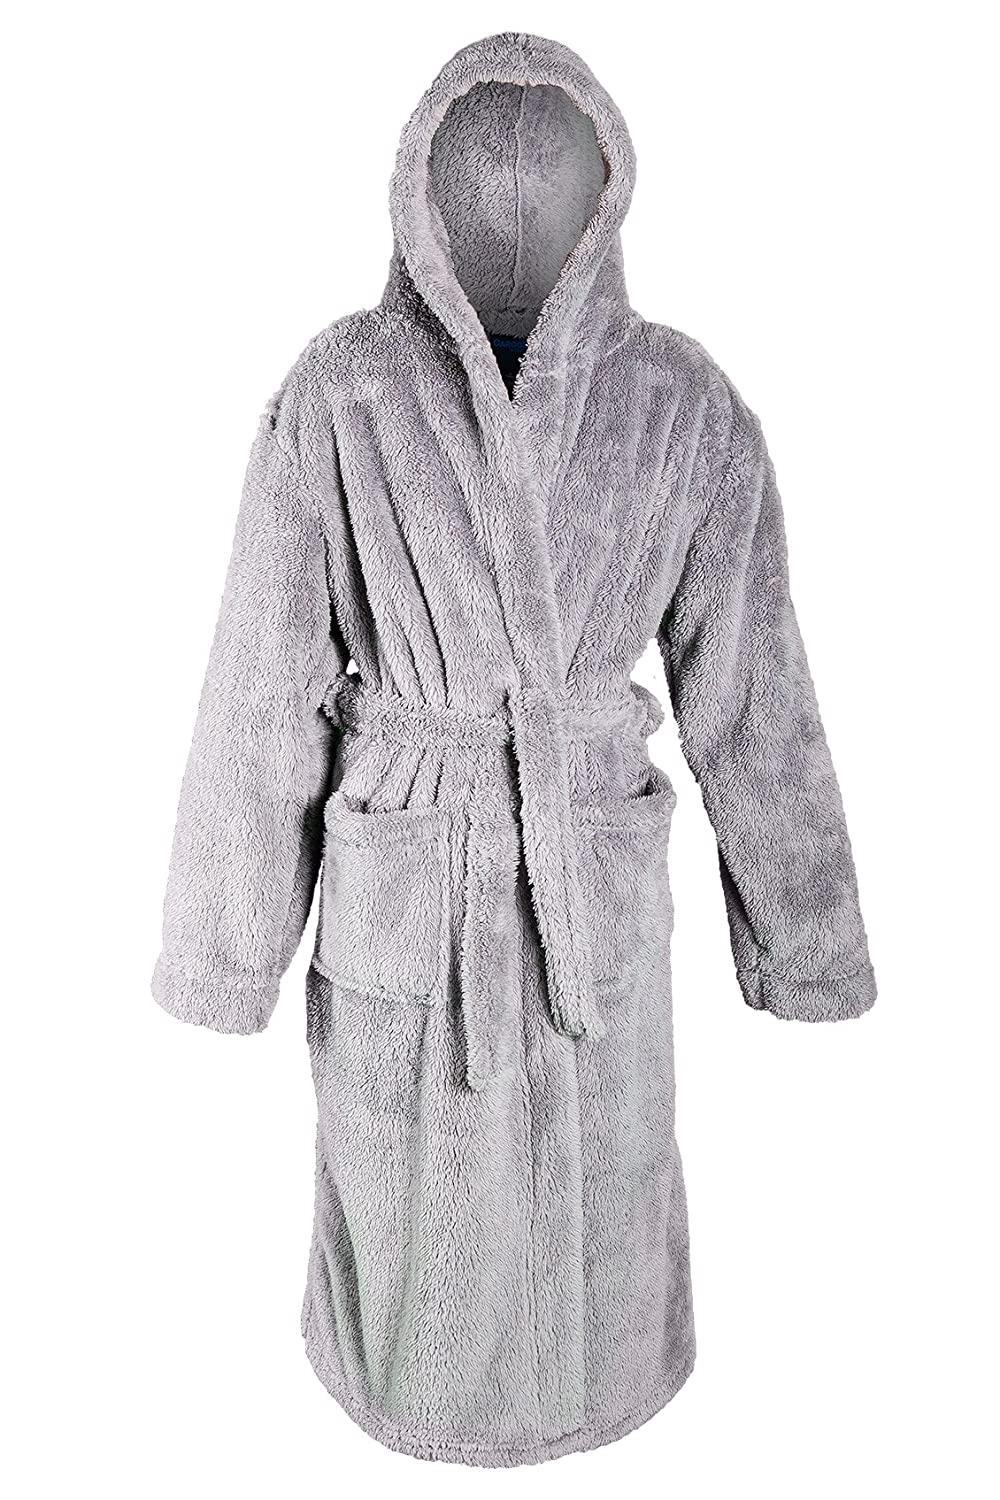 MINIKIDZ Childrens Kids Boys Dressing Gown Robes, Super Soft Snuggle ...